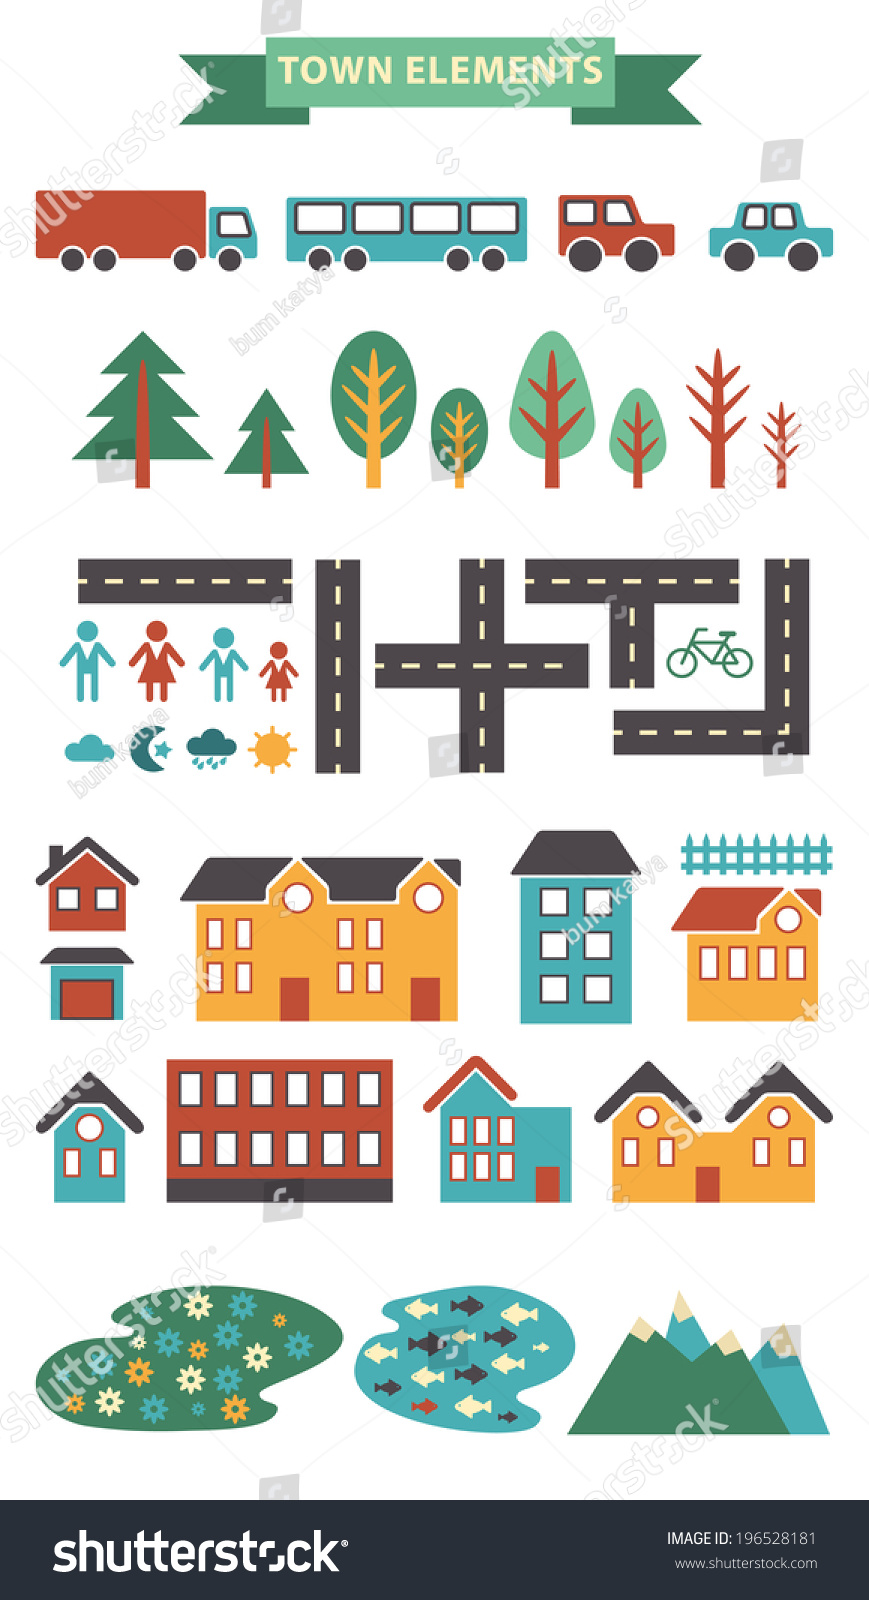 Town Infographic Elements Vector City Elements Stock